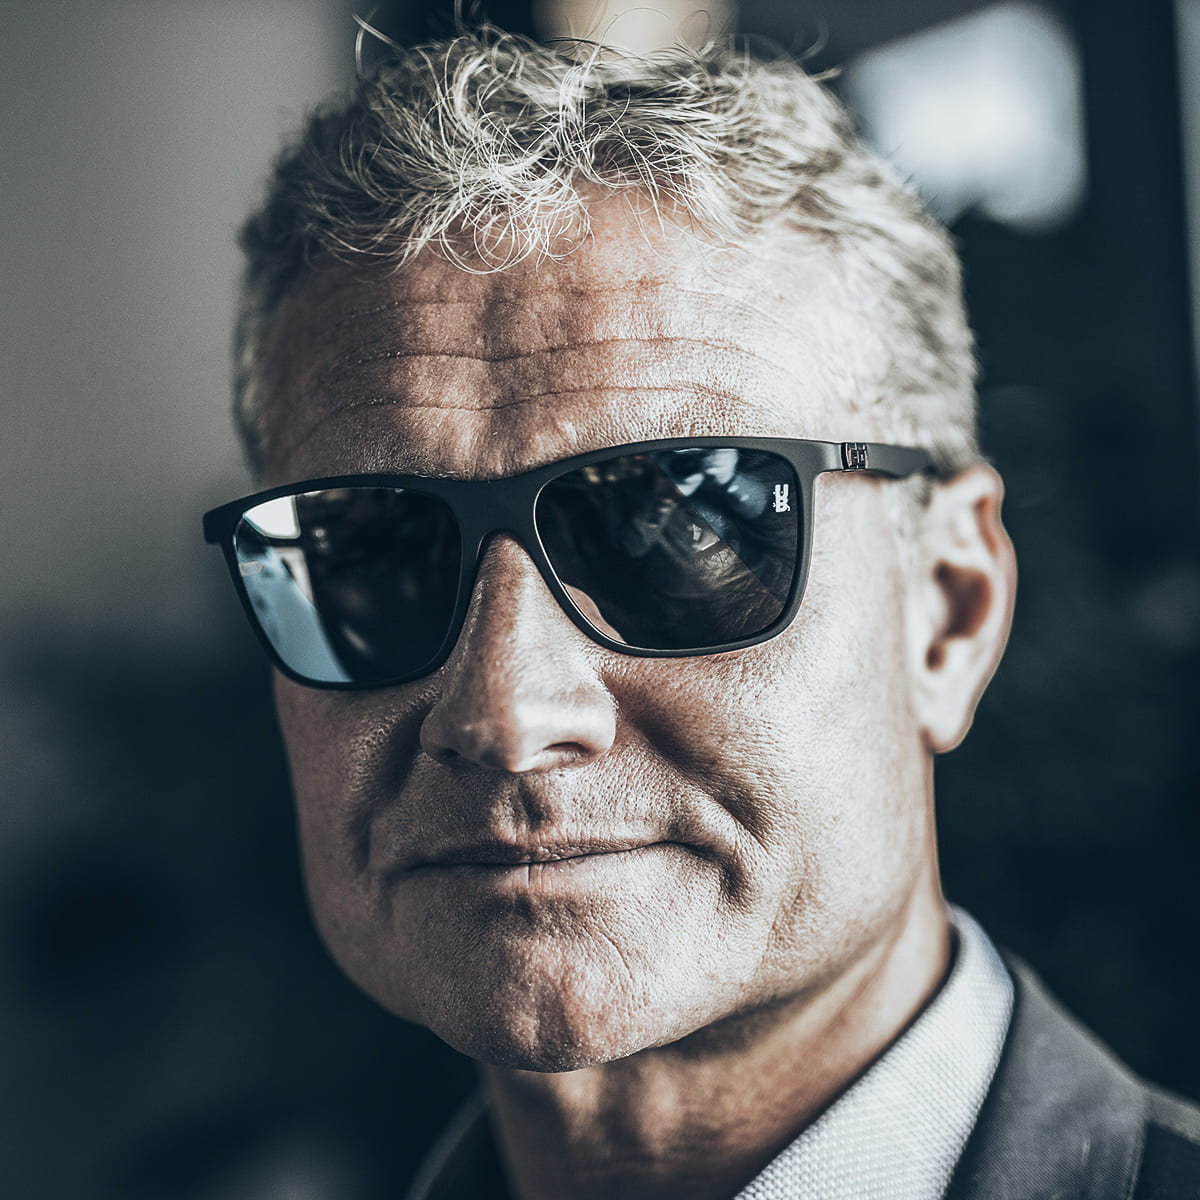 glofyfy unbreakbale sunglasses Celebrities David Coulthard